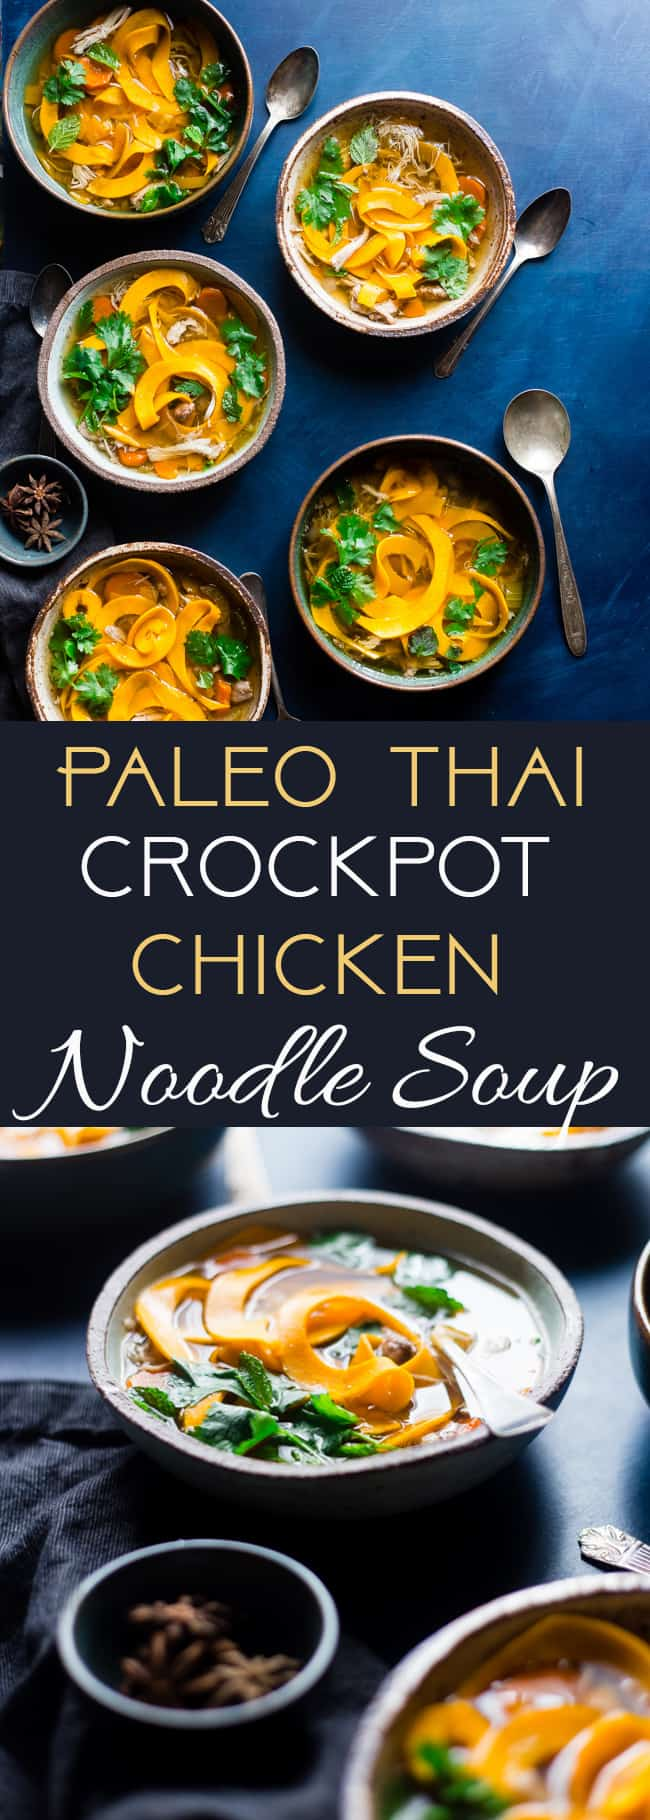 Thai Crockpot Paleo Chicken Noodle Soup - A Thai twist on the classic with butternut squash noodles so it's gluten free, whole30 compliant under 300 calories and 3 SmartPoints! A low-carb option is included! | Foodfaithfitness.com | @FoodFaithFit | slow cooker paleo chicken soup. crockpot chicken noodle soup. low carb chicken noodle soup. healthy chicken noodle soup. slow cooker chicken noodle soup. whole30 soup recipes. whole30 dinner recipes. paleo dinner recipes. whole30 slow cooker recipes. dairy free chicken noodle soup. Butternut squash paleo chicken noodle soup.